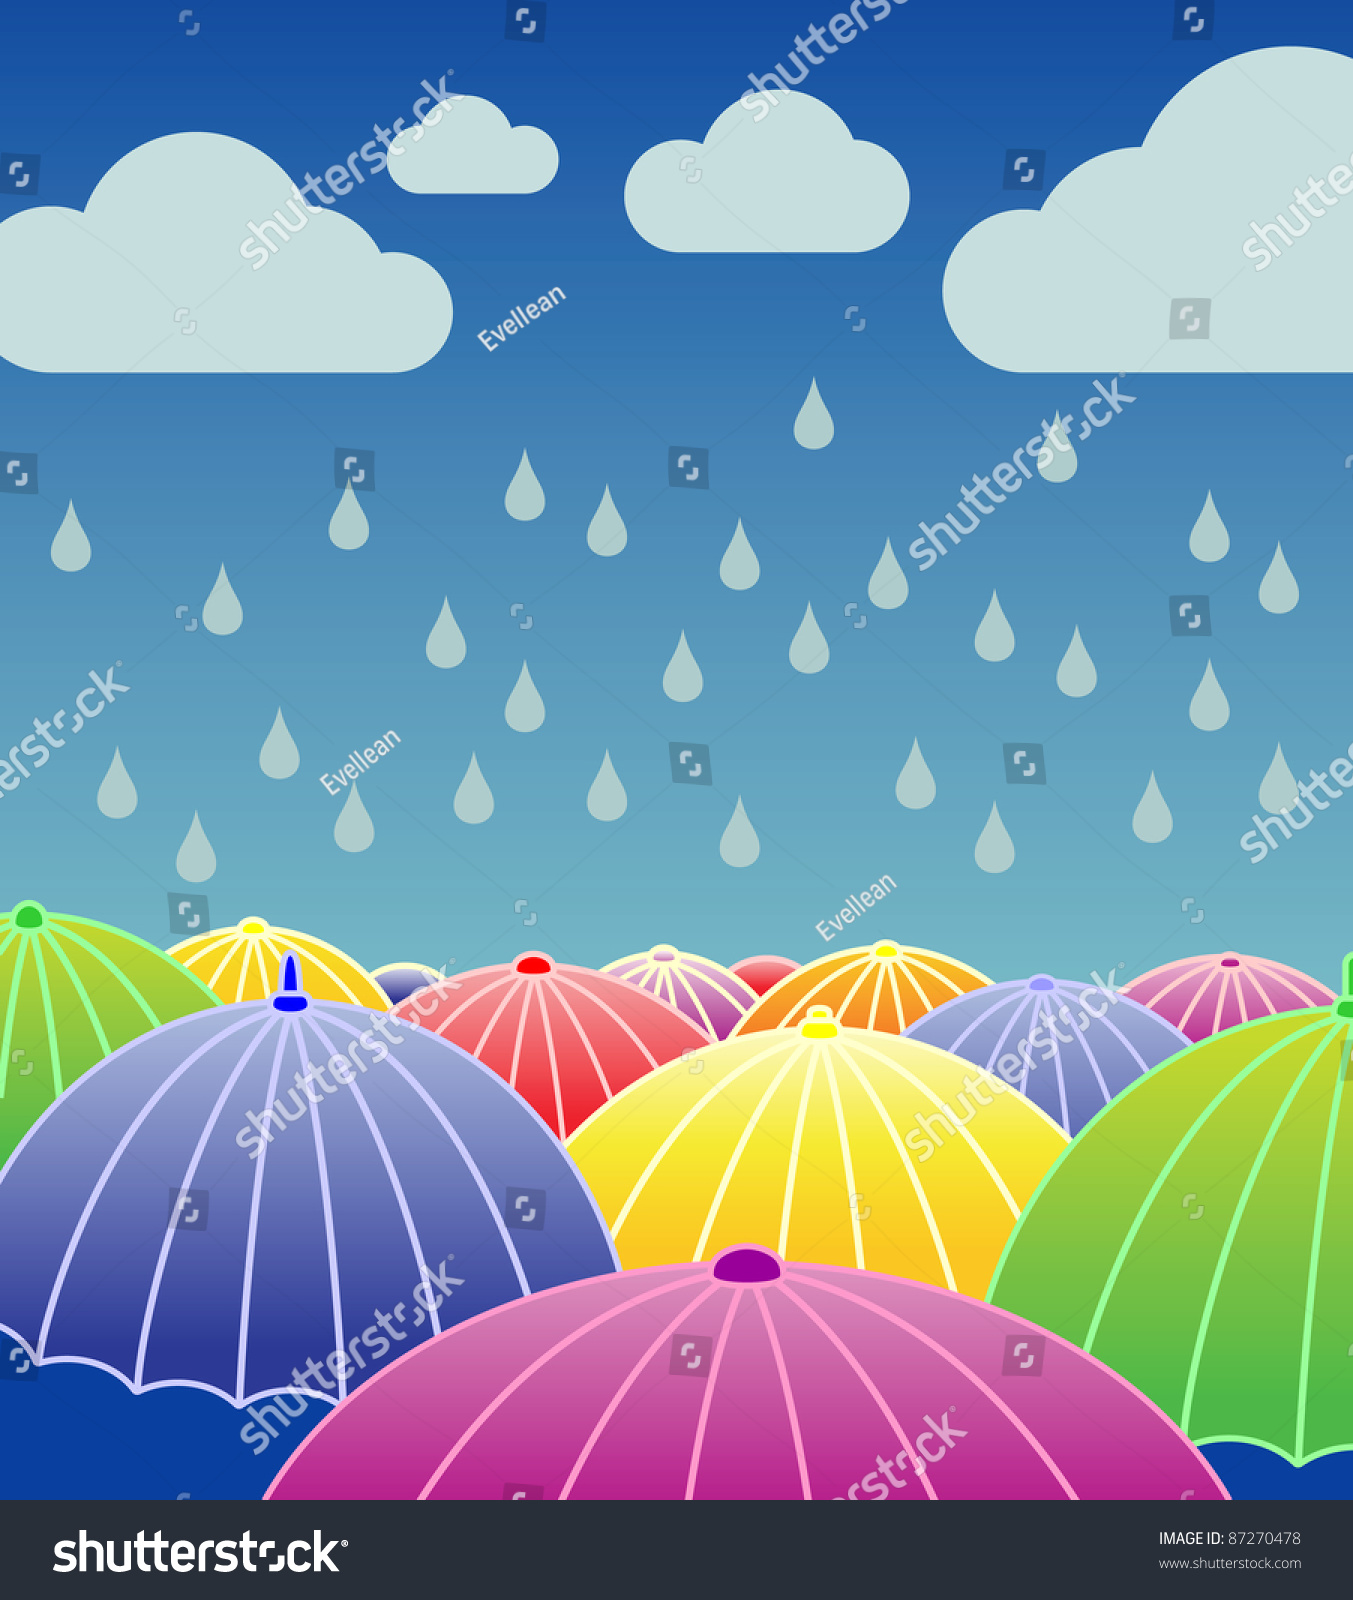 Rainy Day Wallpaper: Rainy Day Background Open Colourful Umbrellas Stock Vector